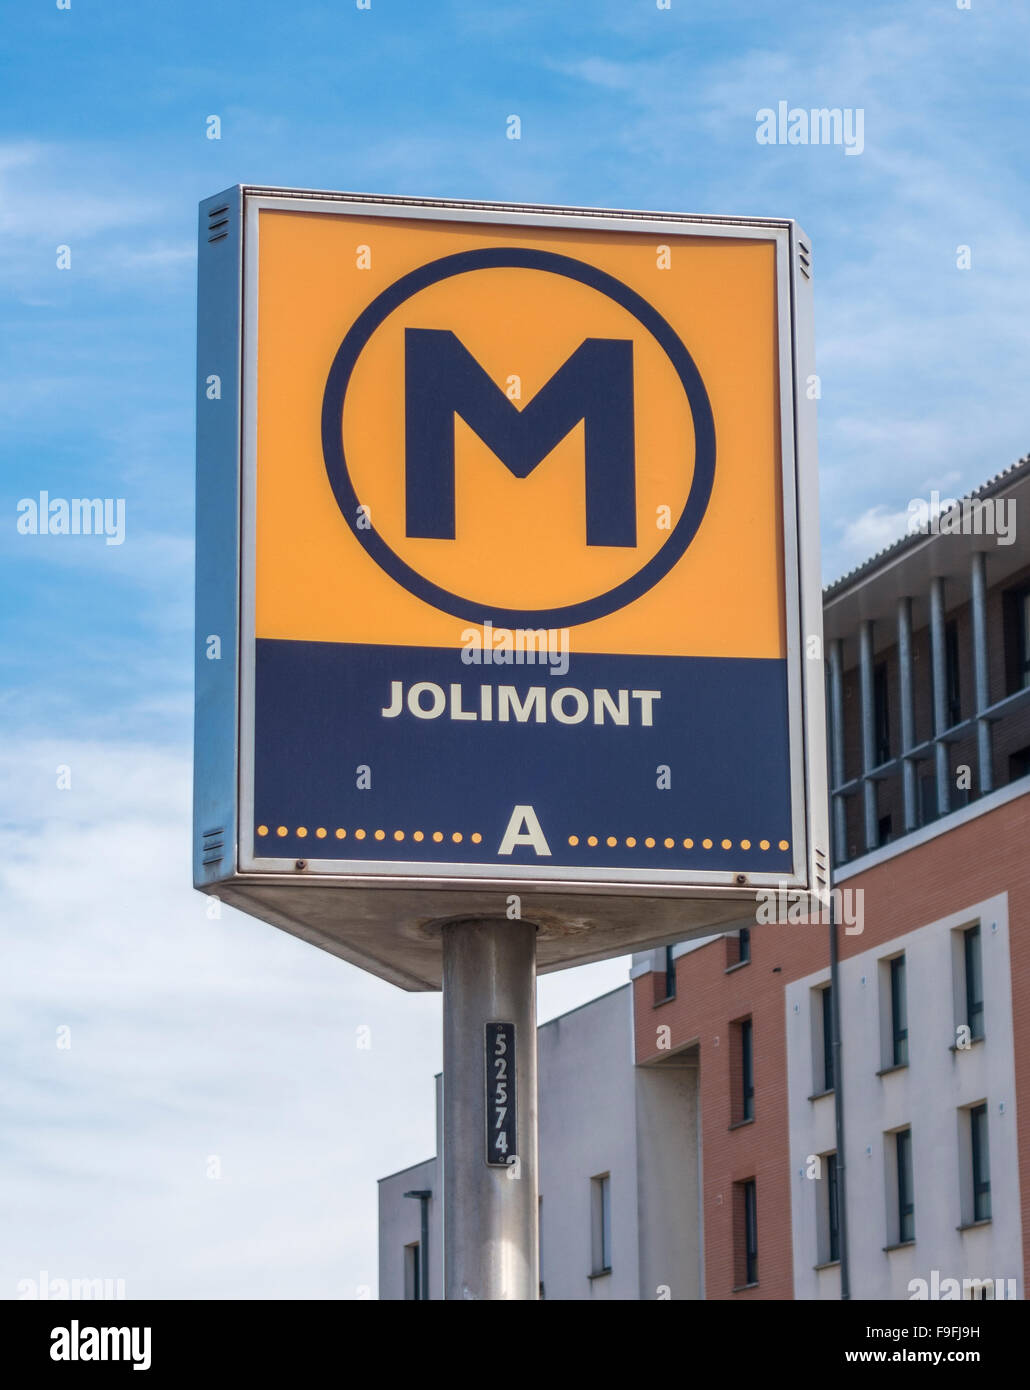 Toulouse Metro sign at Metro Station Jolimont. - Stock Image